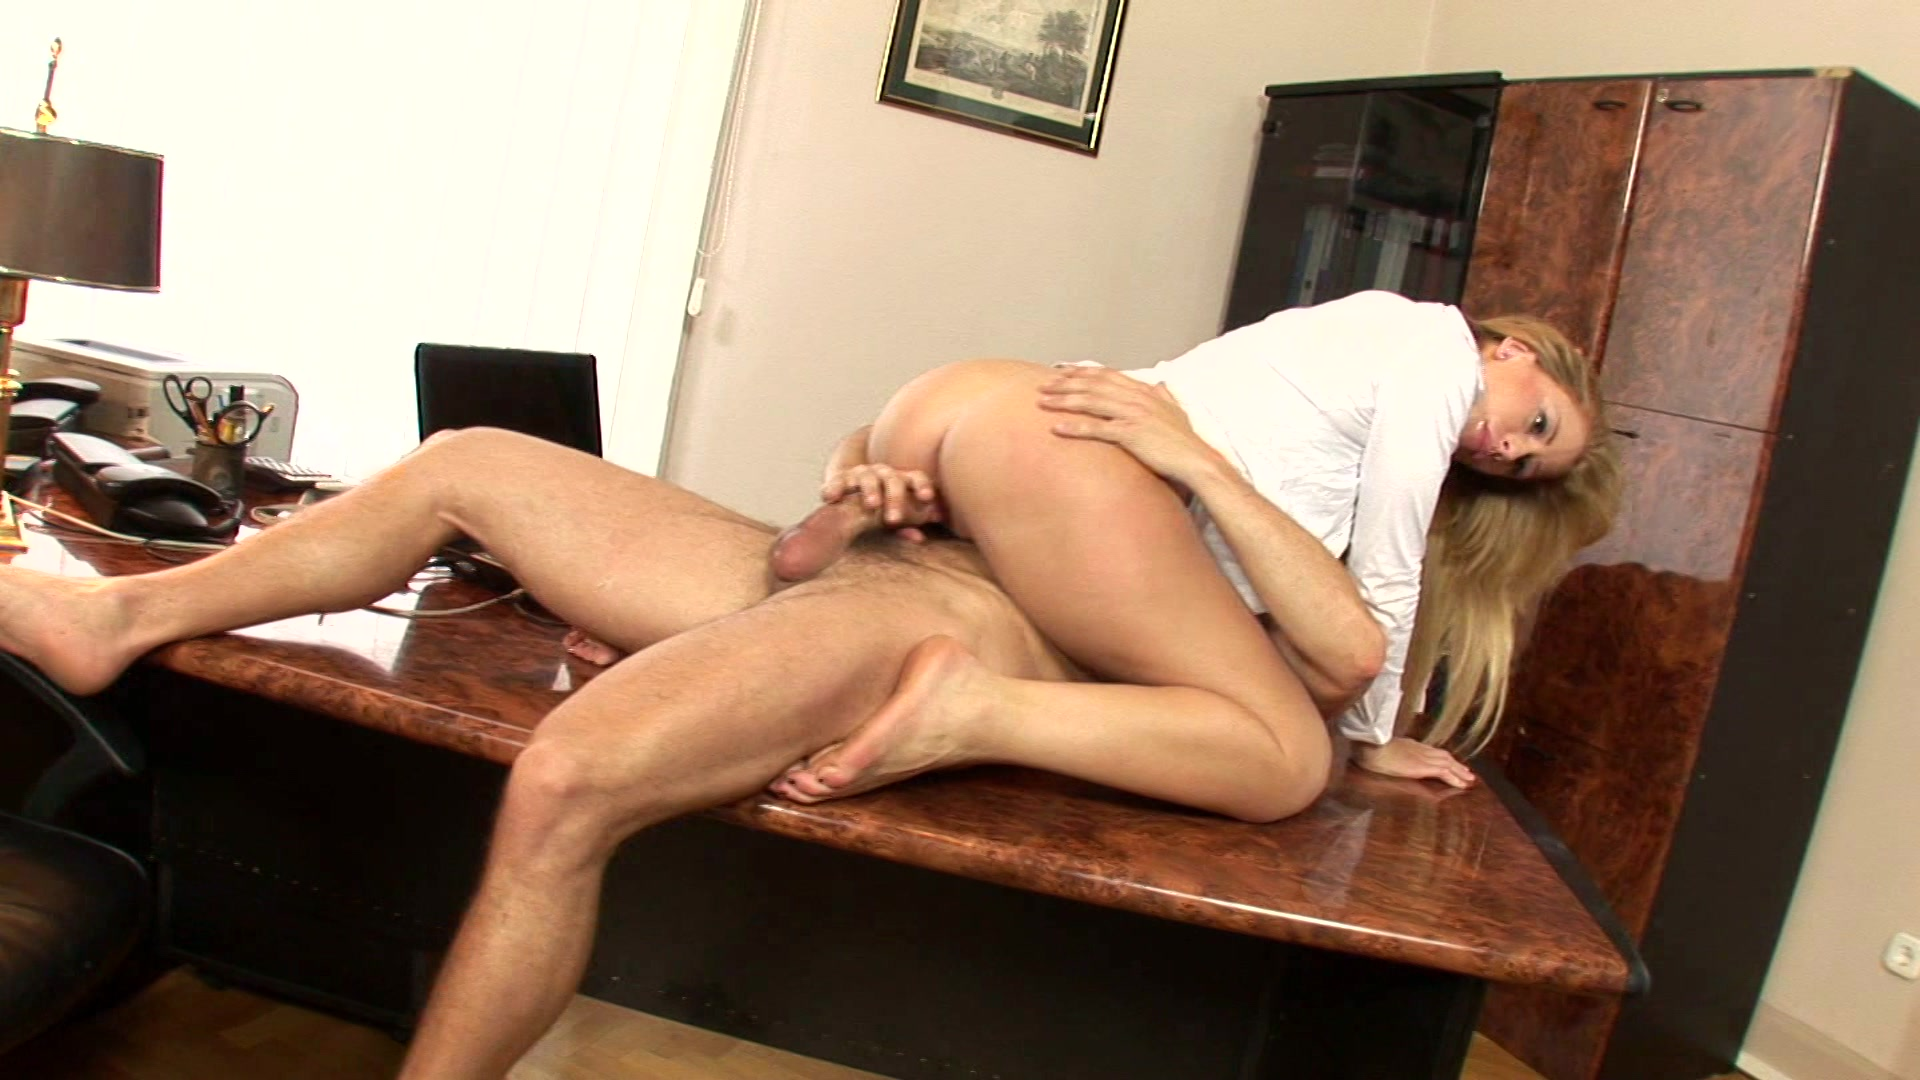 Blonde having sex in office, upskirt oops movie and pics